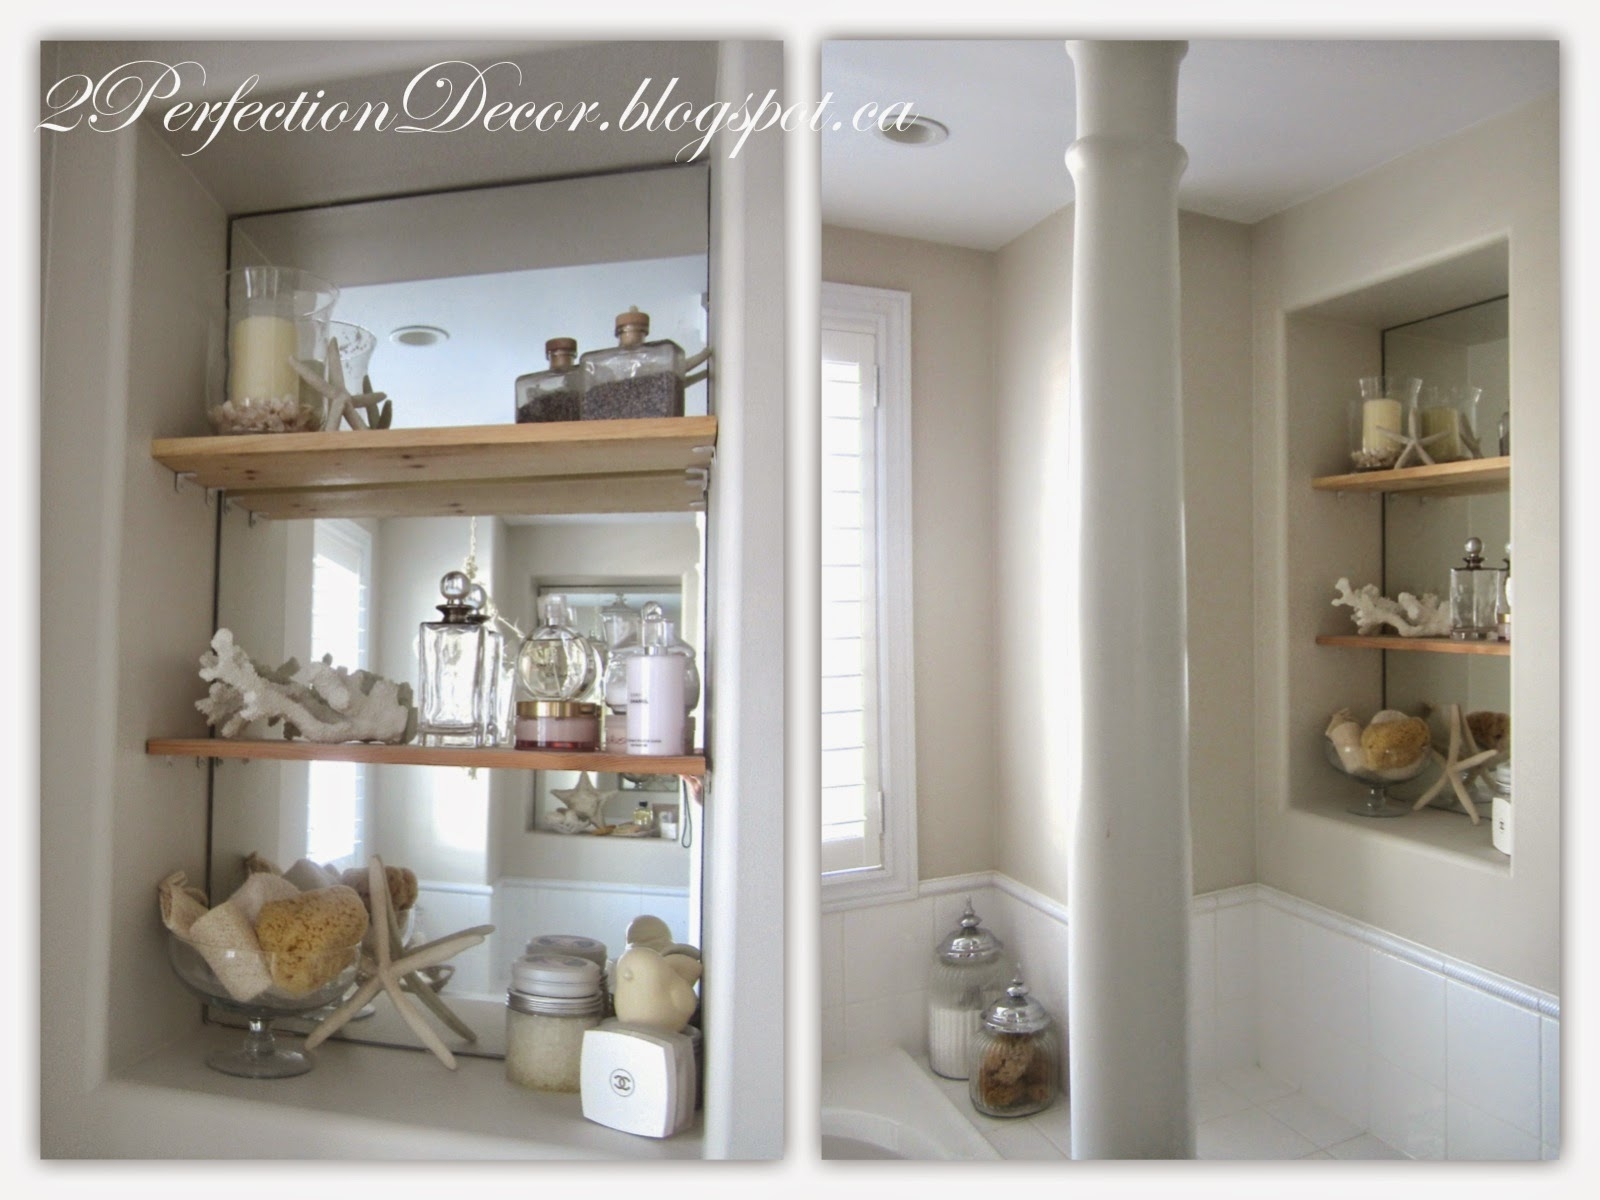 2Perfection Decor: Our Master Ensuite Bathroom Reveal